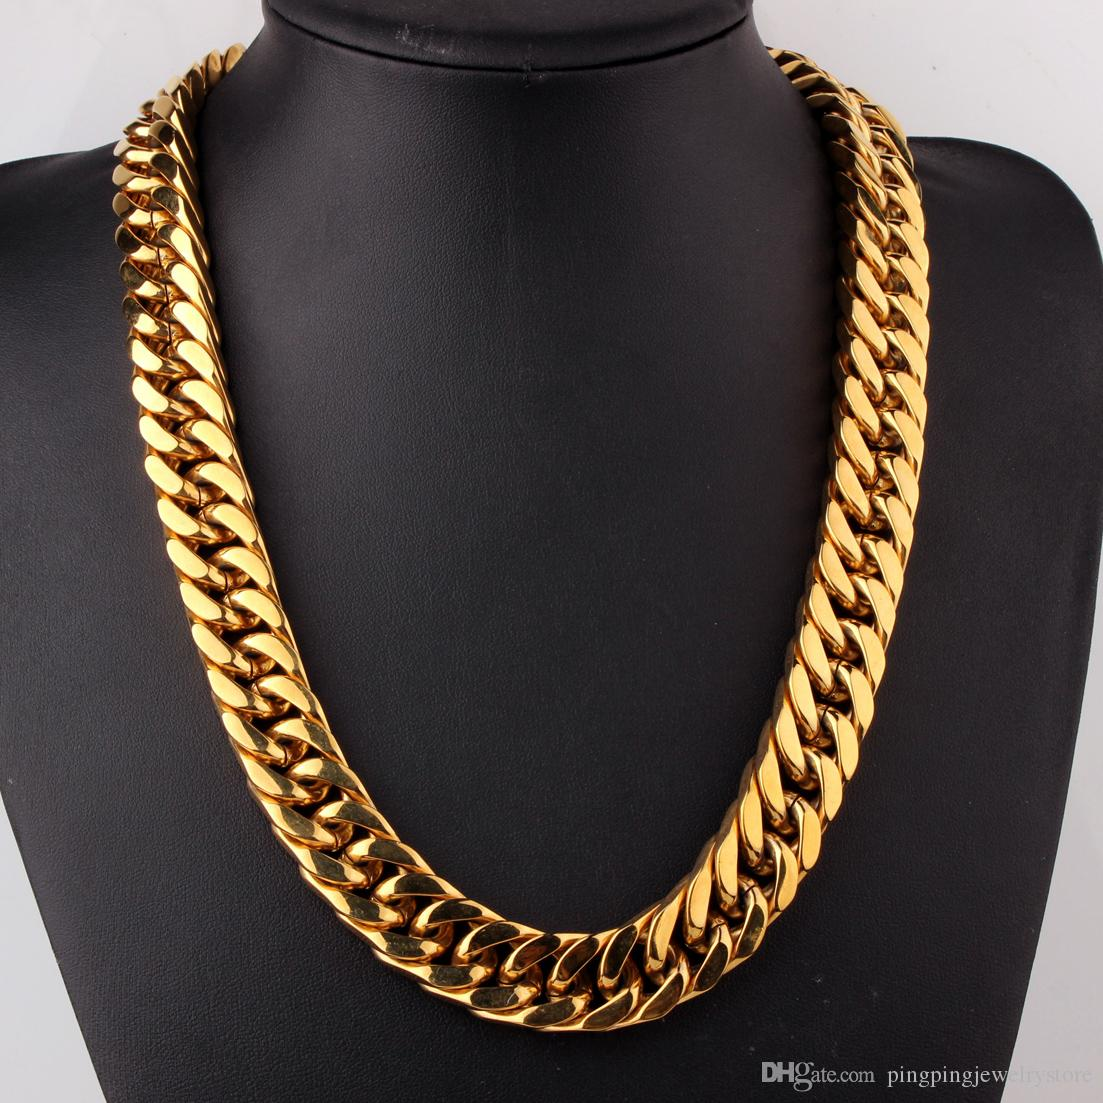 2020 Customize Size 18 36 17mm Top Quality 316l Stainless Steel Gold Plated Curb Cuban Chain Mens Women Necklace Gift From Pingpingjewelrystore 21 96 Dhgate Com